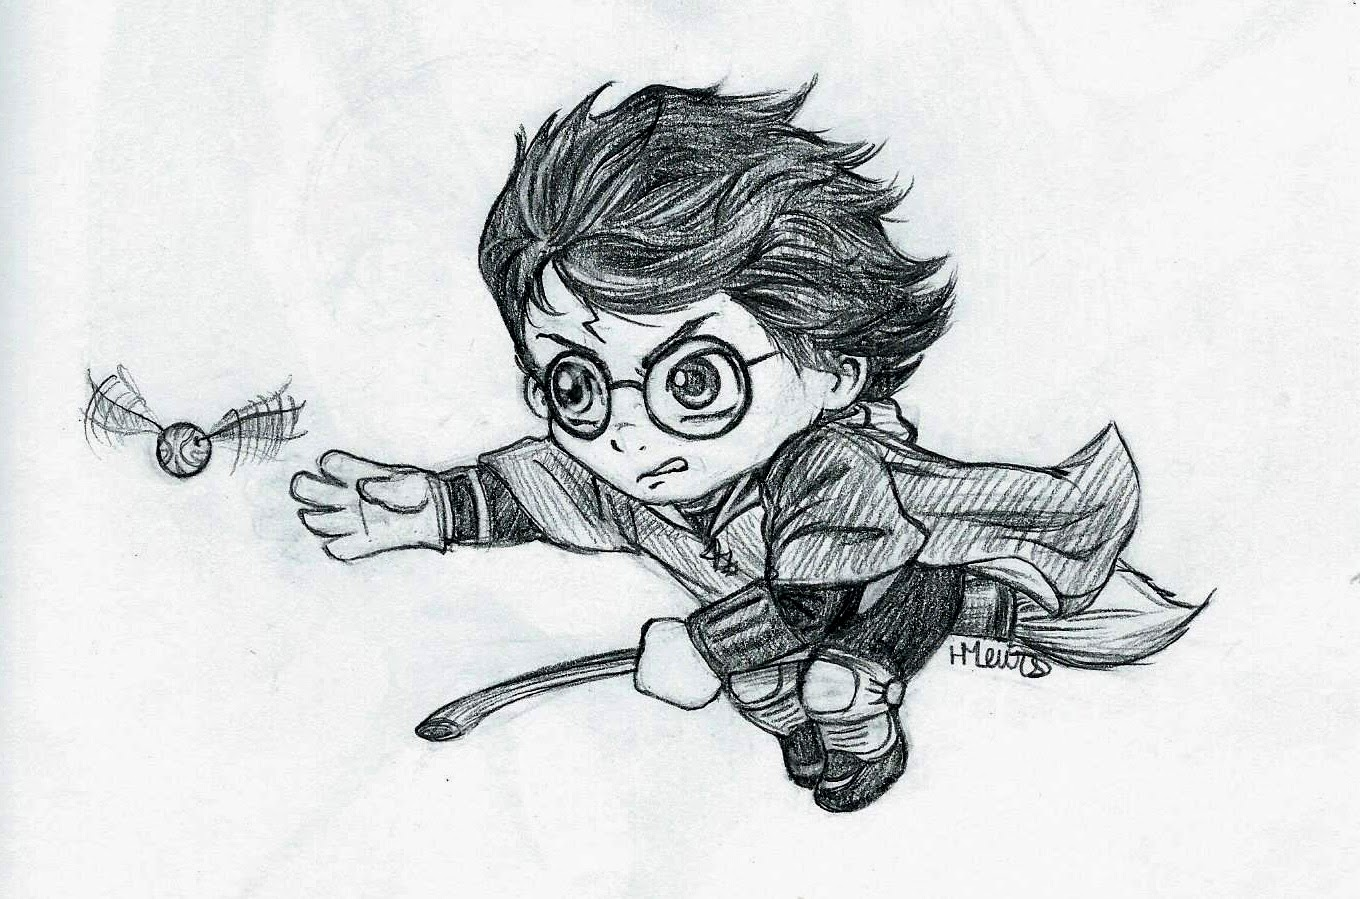 It's just a picture of Sweet Harry Potter Snitch Drawing